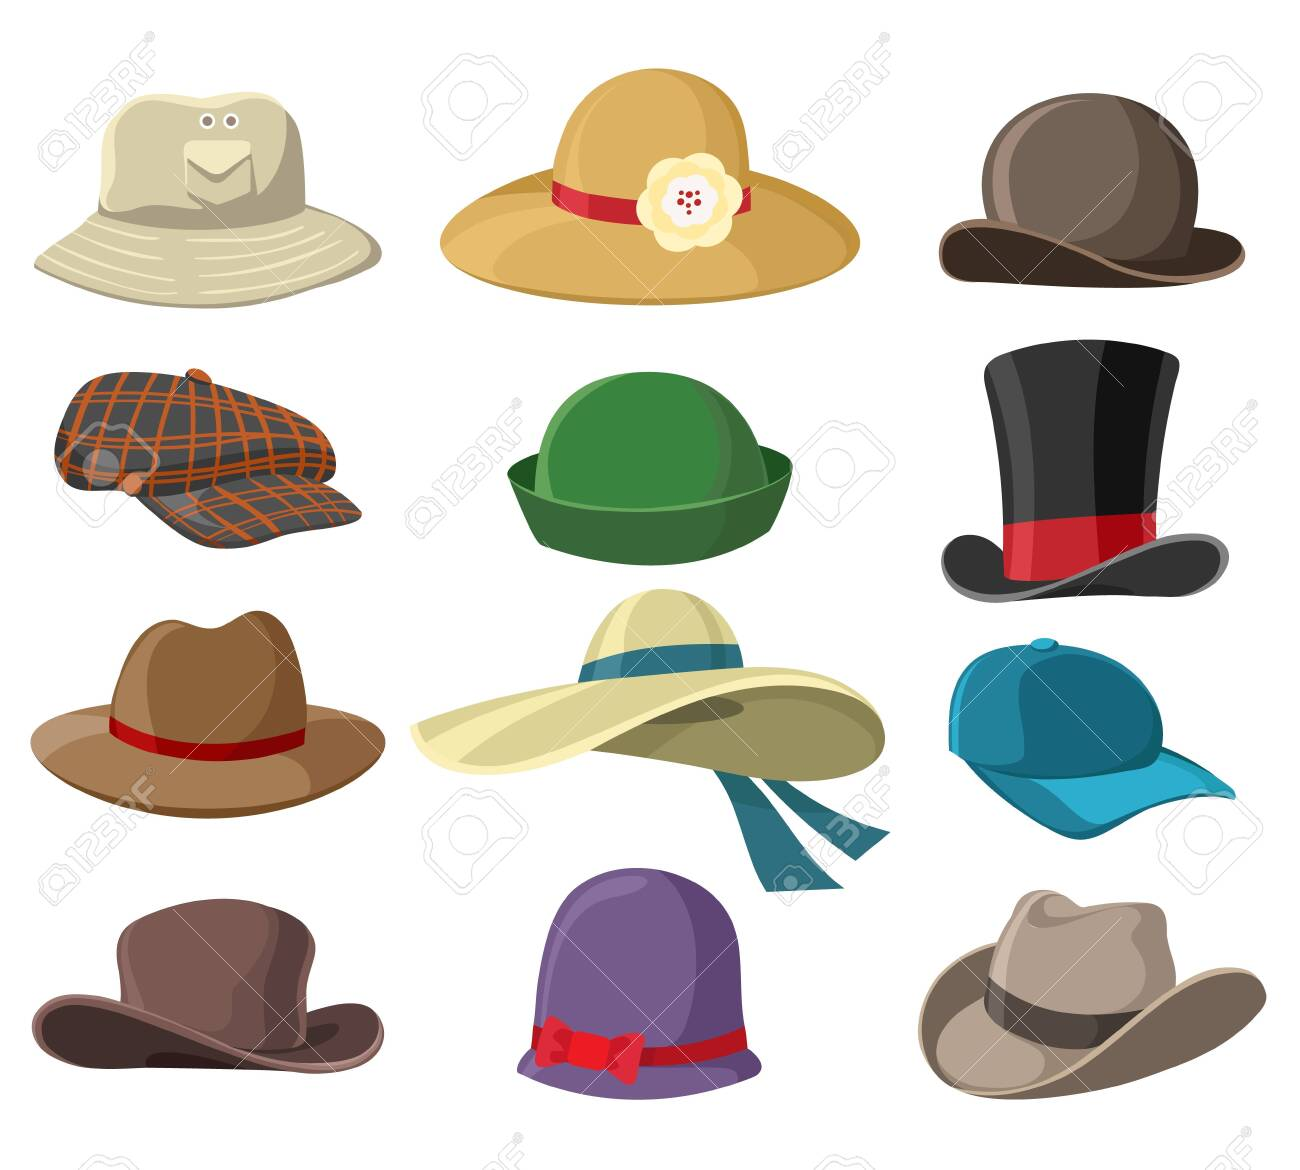 Hats and headwears. Hat images isolated on white background, headgear vector illustrations for man and woman, cap headgears for ladies and gentlemen - 128775005